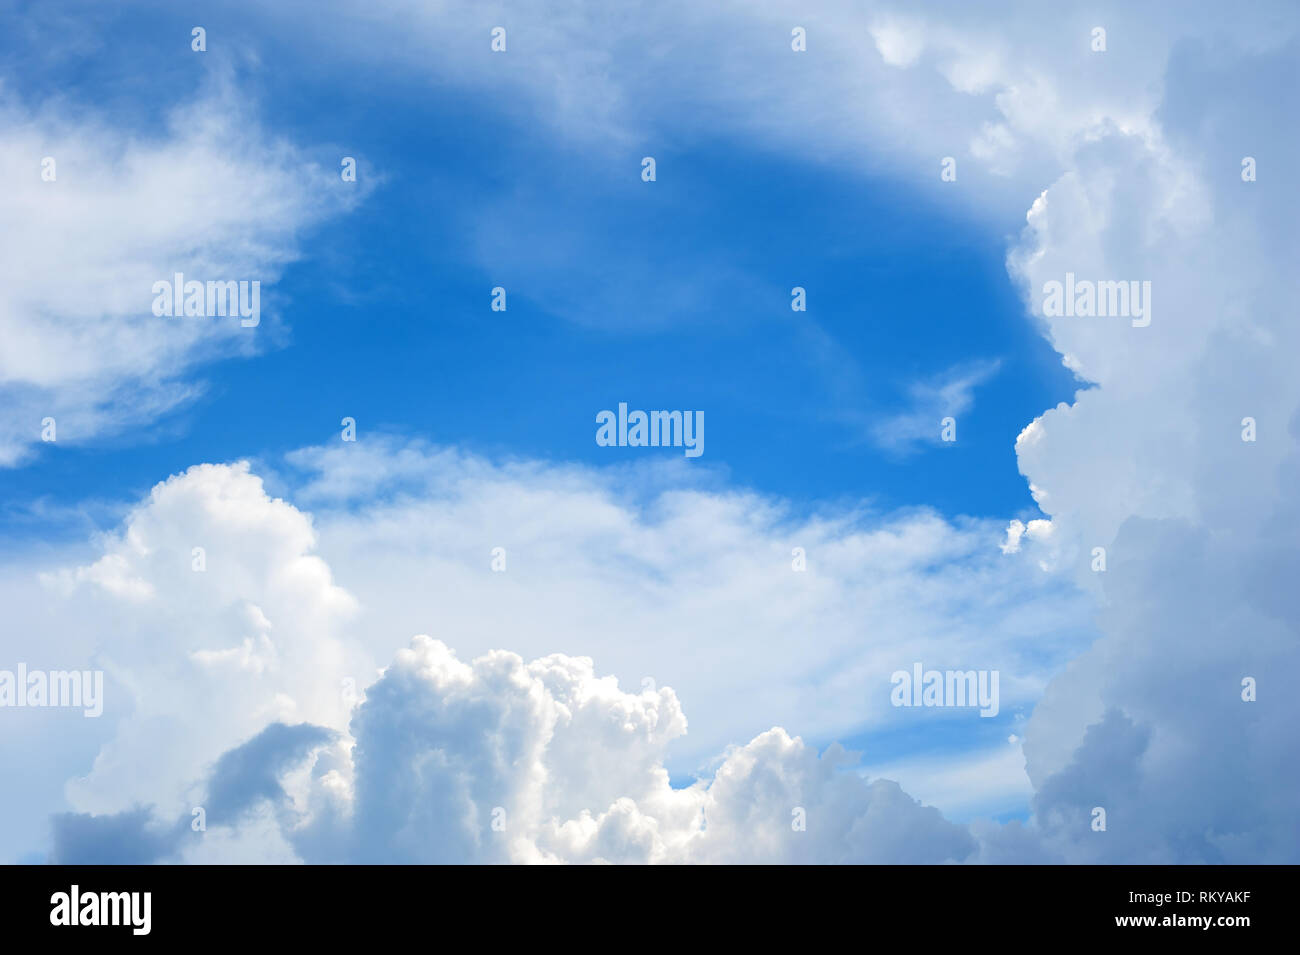 Dynamic sky and clouds with copy space  Abstract wallpaper